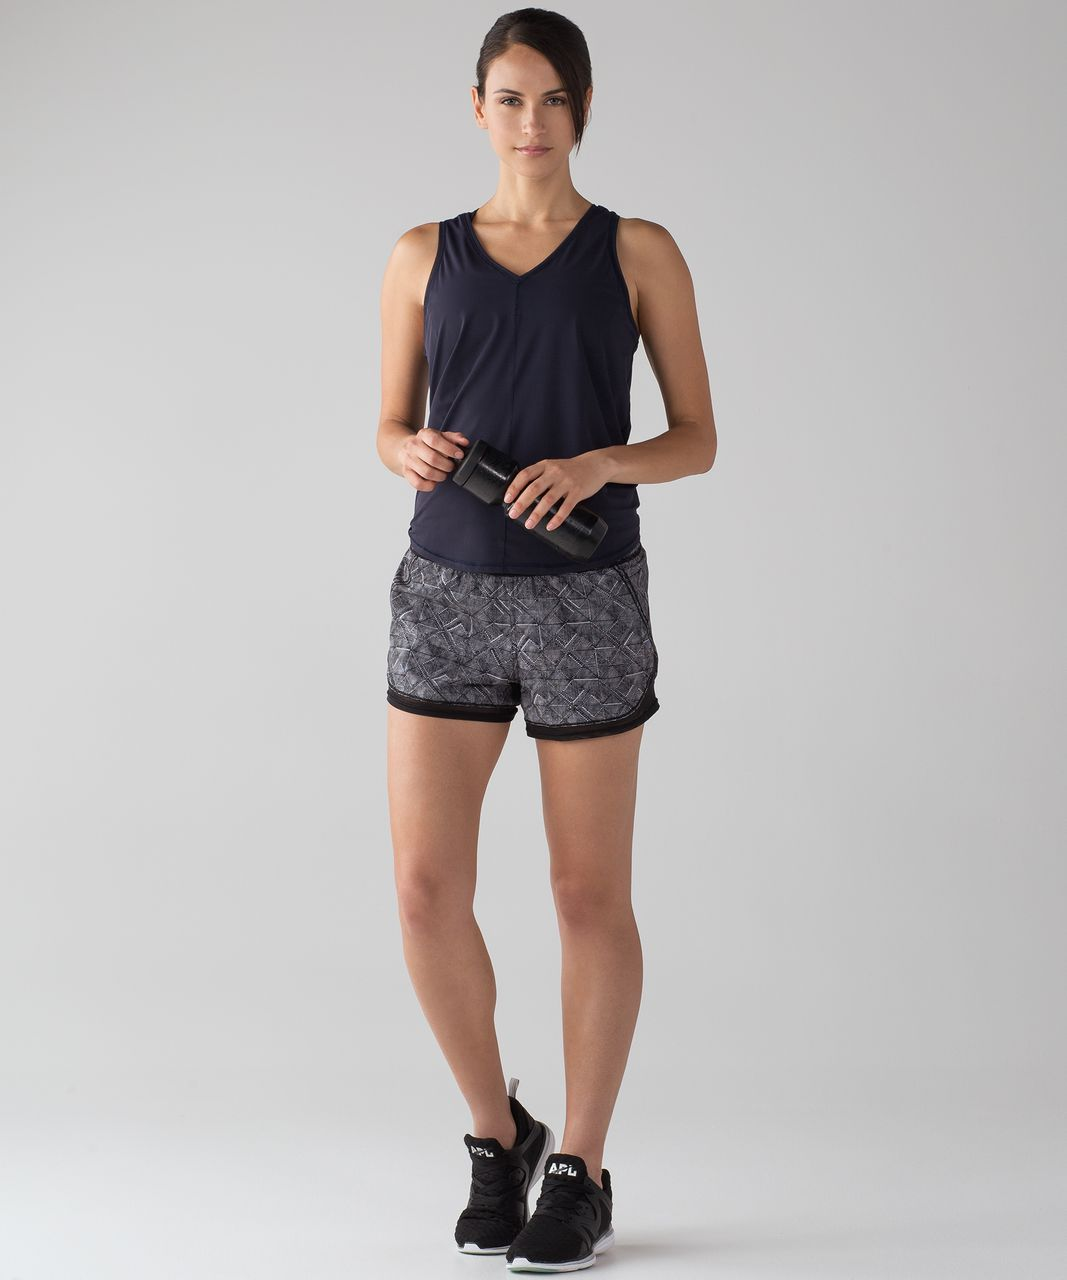 8a1bfb5f720 Lululemon Two With One Short (Reversible 3